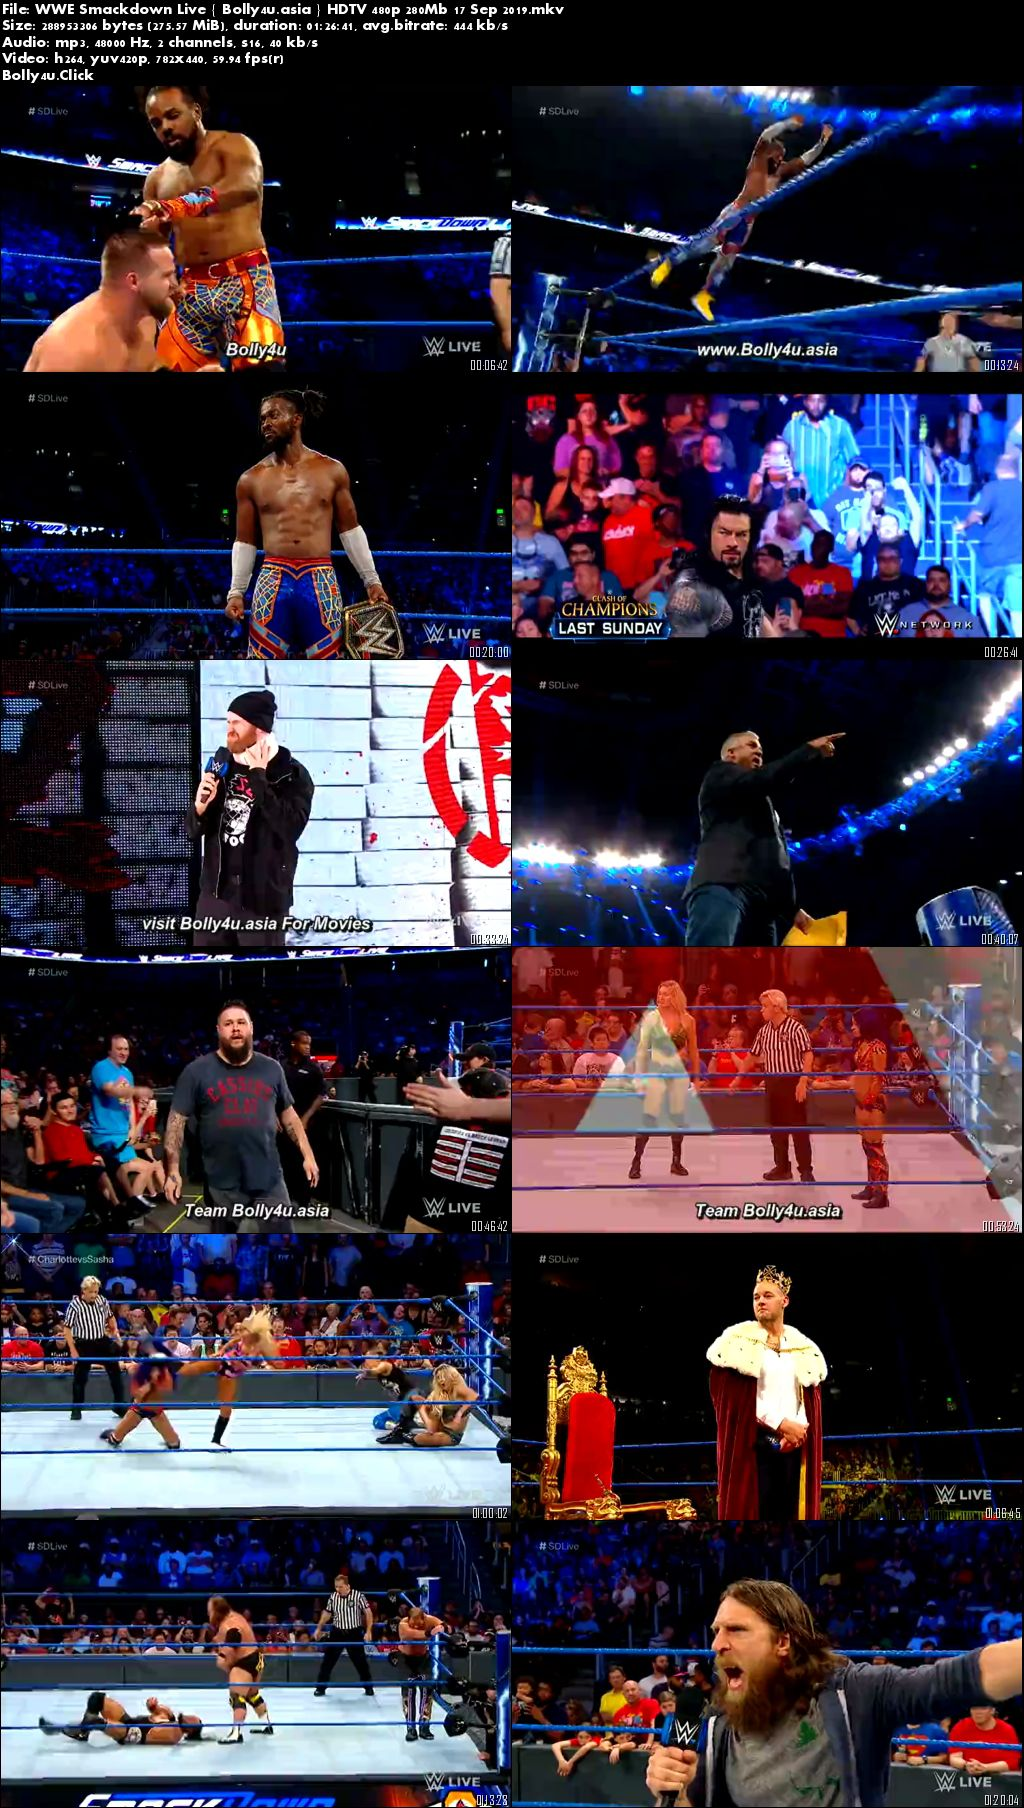 WWE Smackdown Live HDTV 480p 280Mb 17 Sep 2019 Download